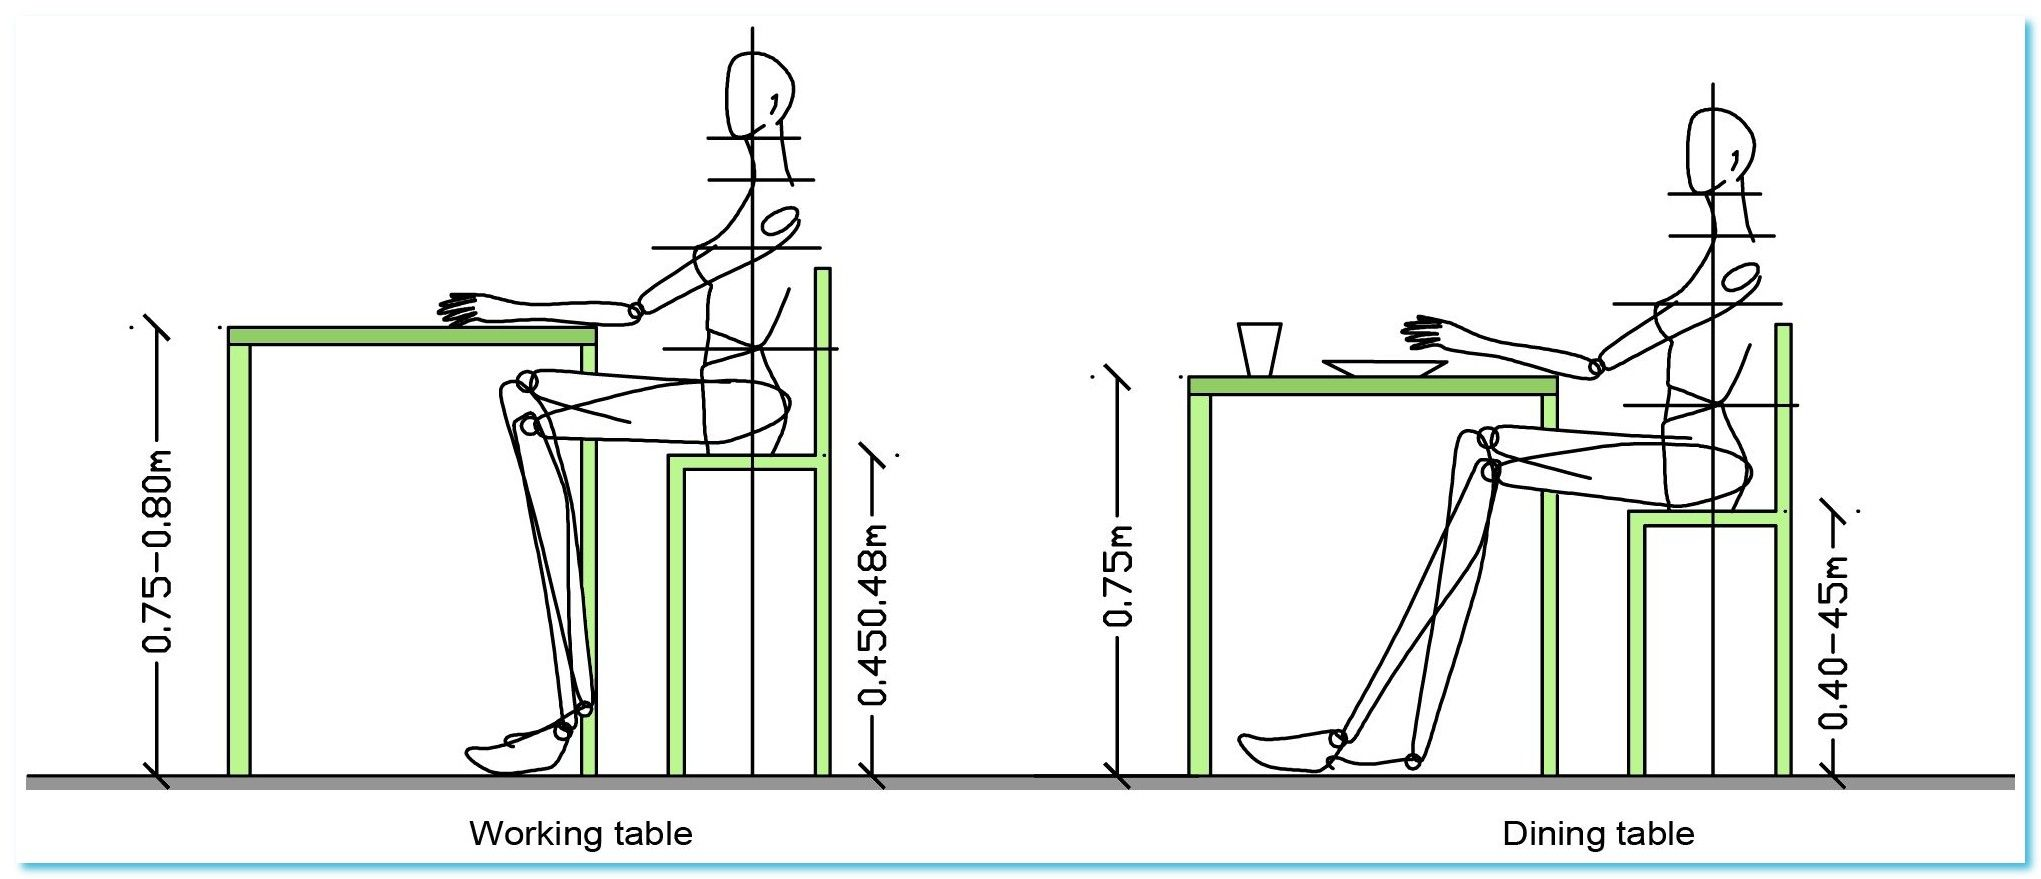 102 Reference Of Standard Bar Stool Height In Mm In 2020 Dining Table With Bench Bar Table And Stools Dining Table Sizes